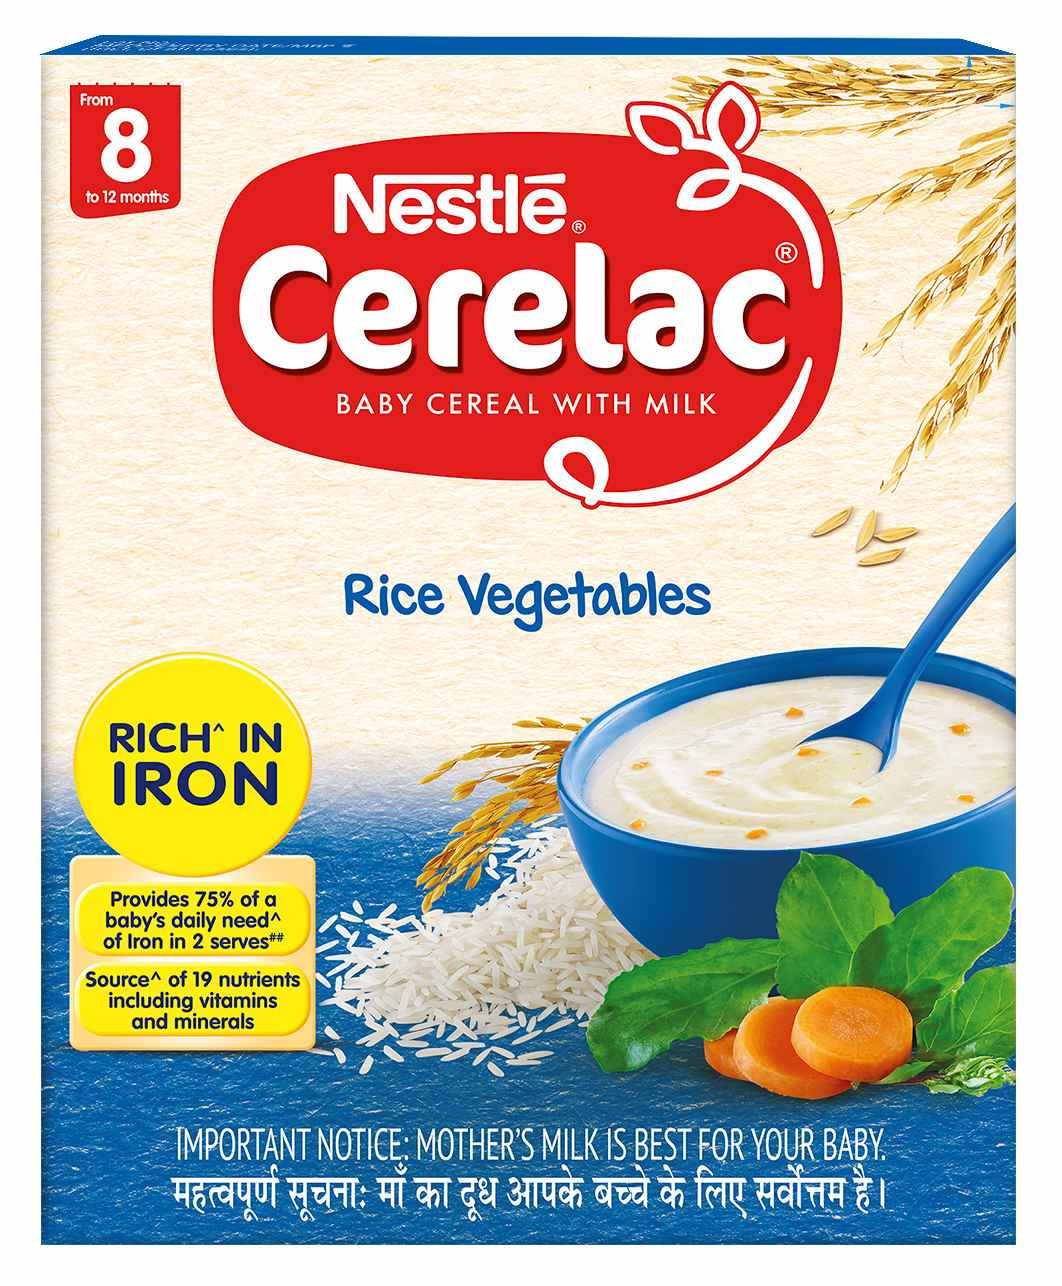 Nestle Cerelac Baby Cereal With Milk Rice Vegetables 300g